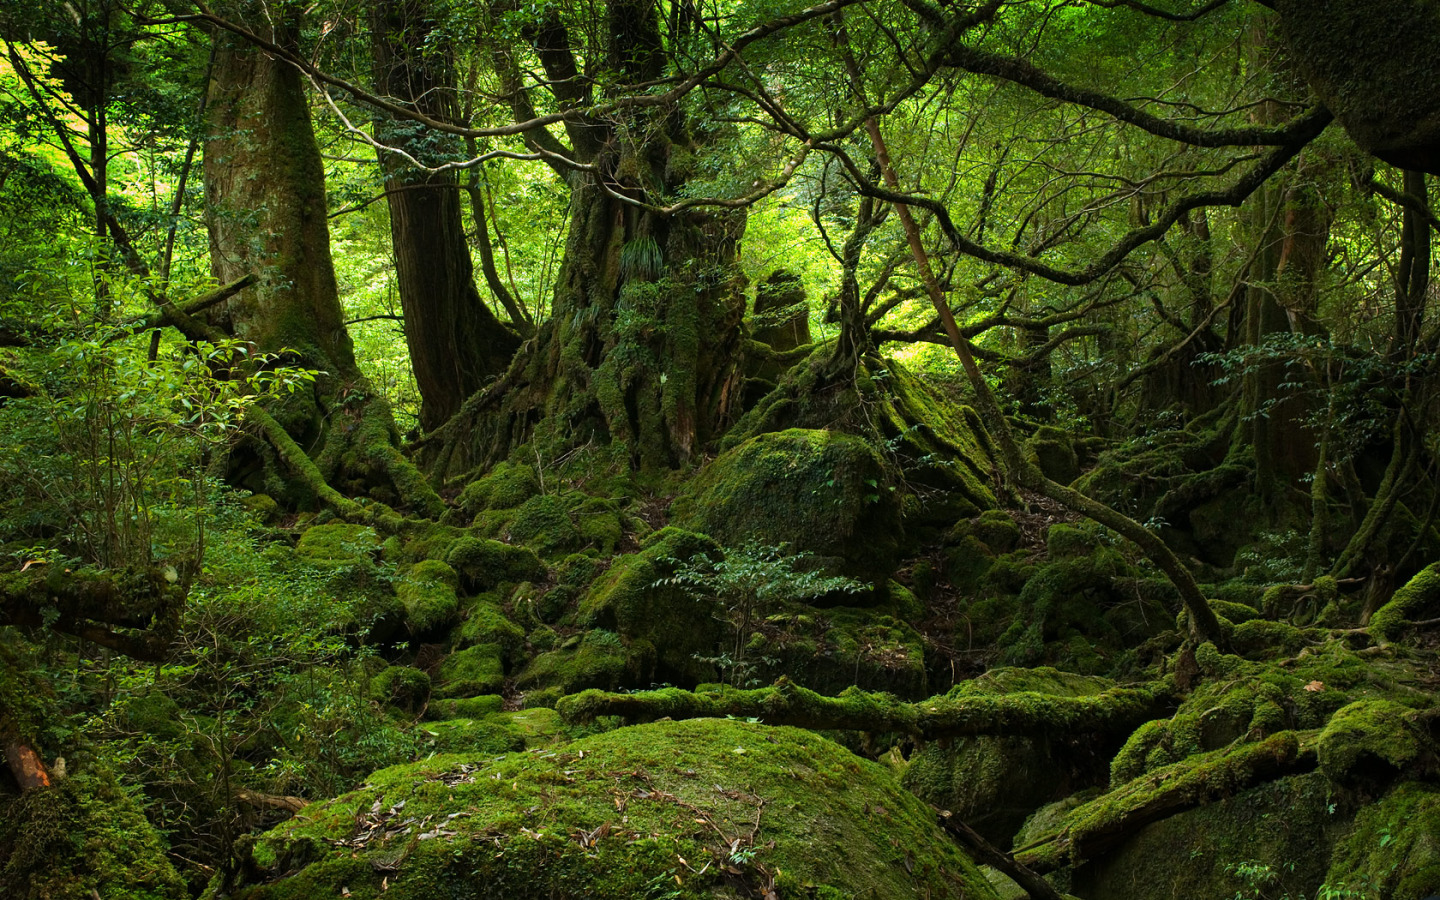 Forest Moss Wallpapers 34398 2560x1440 px